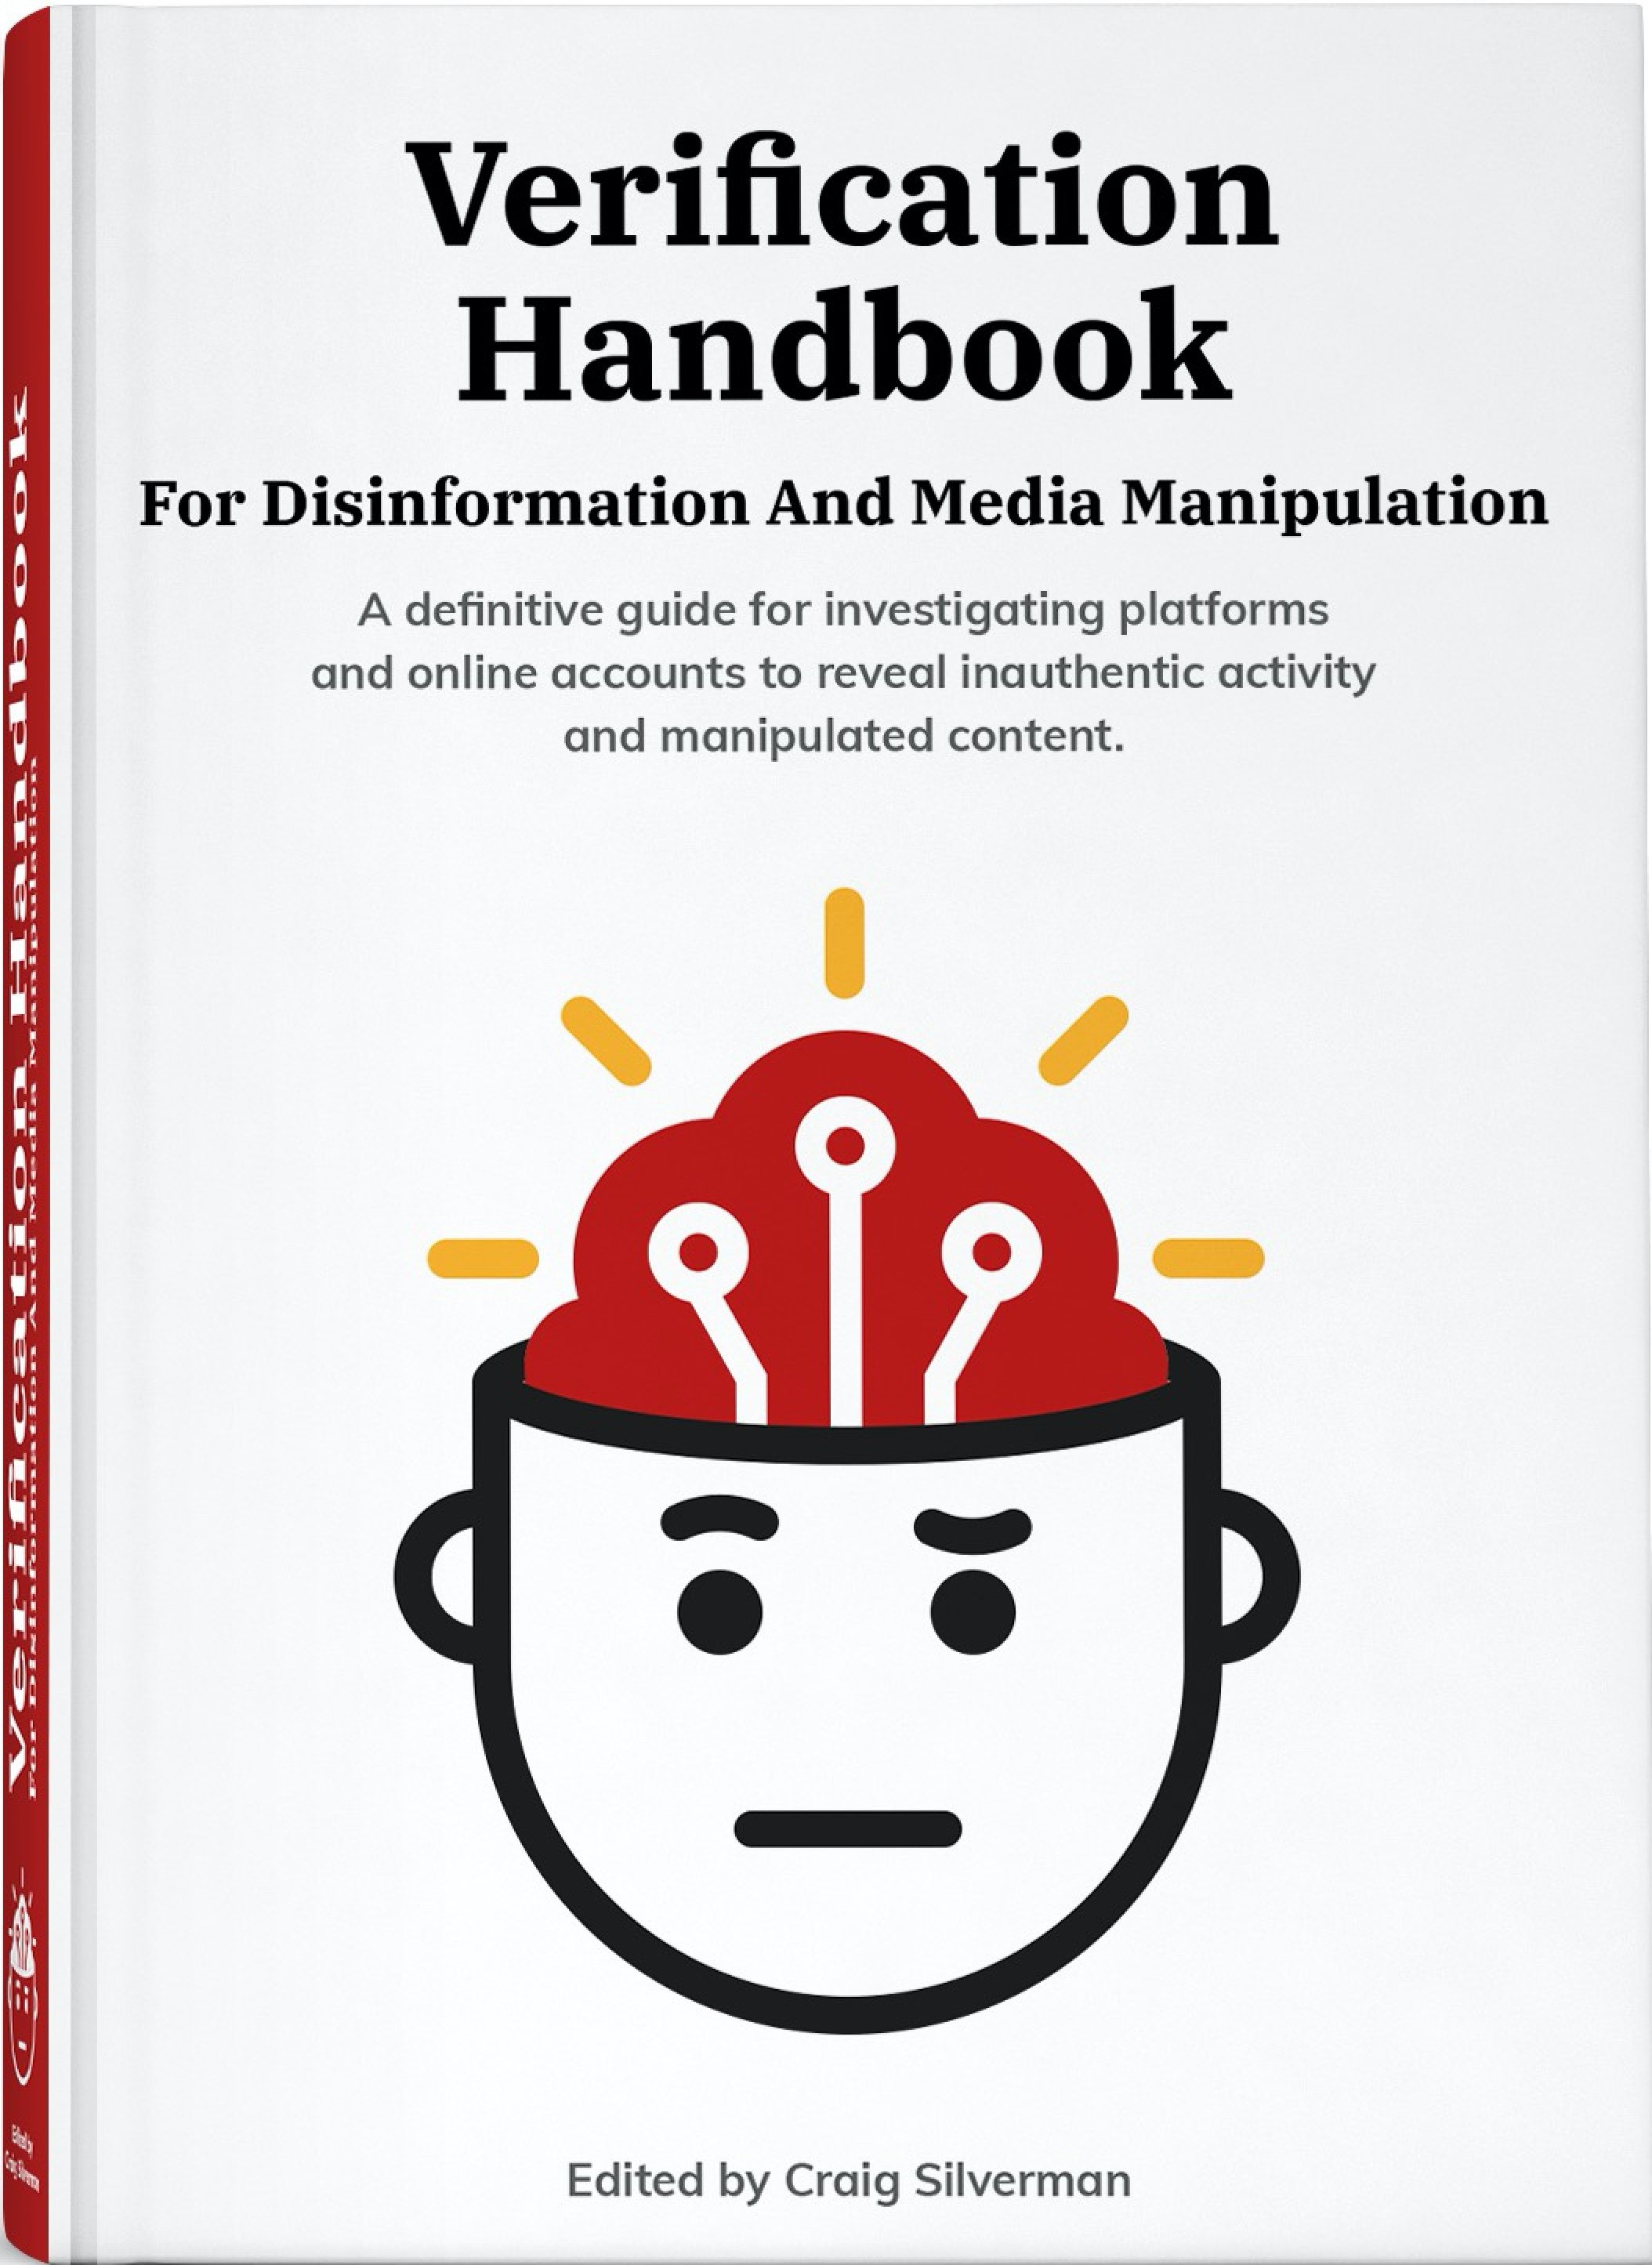 VERIFICATION HANDBOOK 3 FRONT squashed